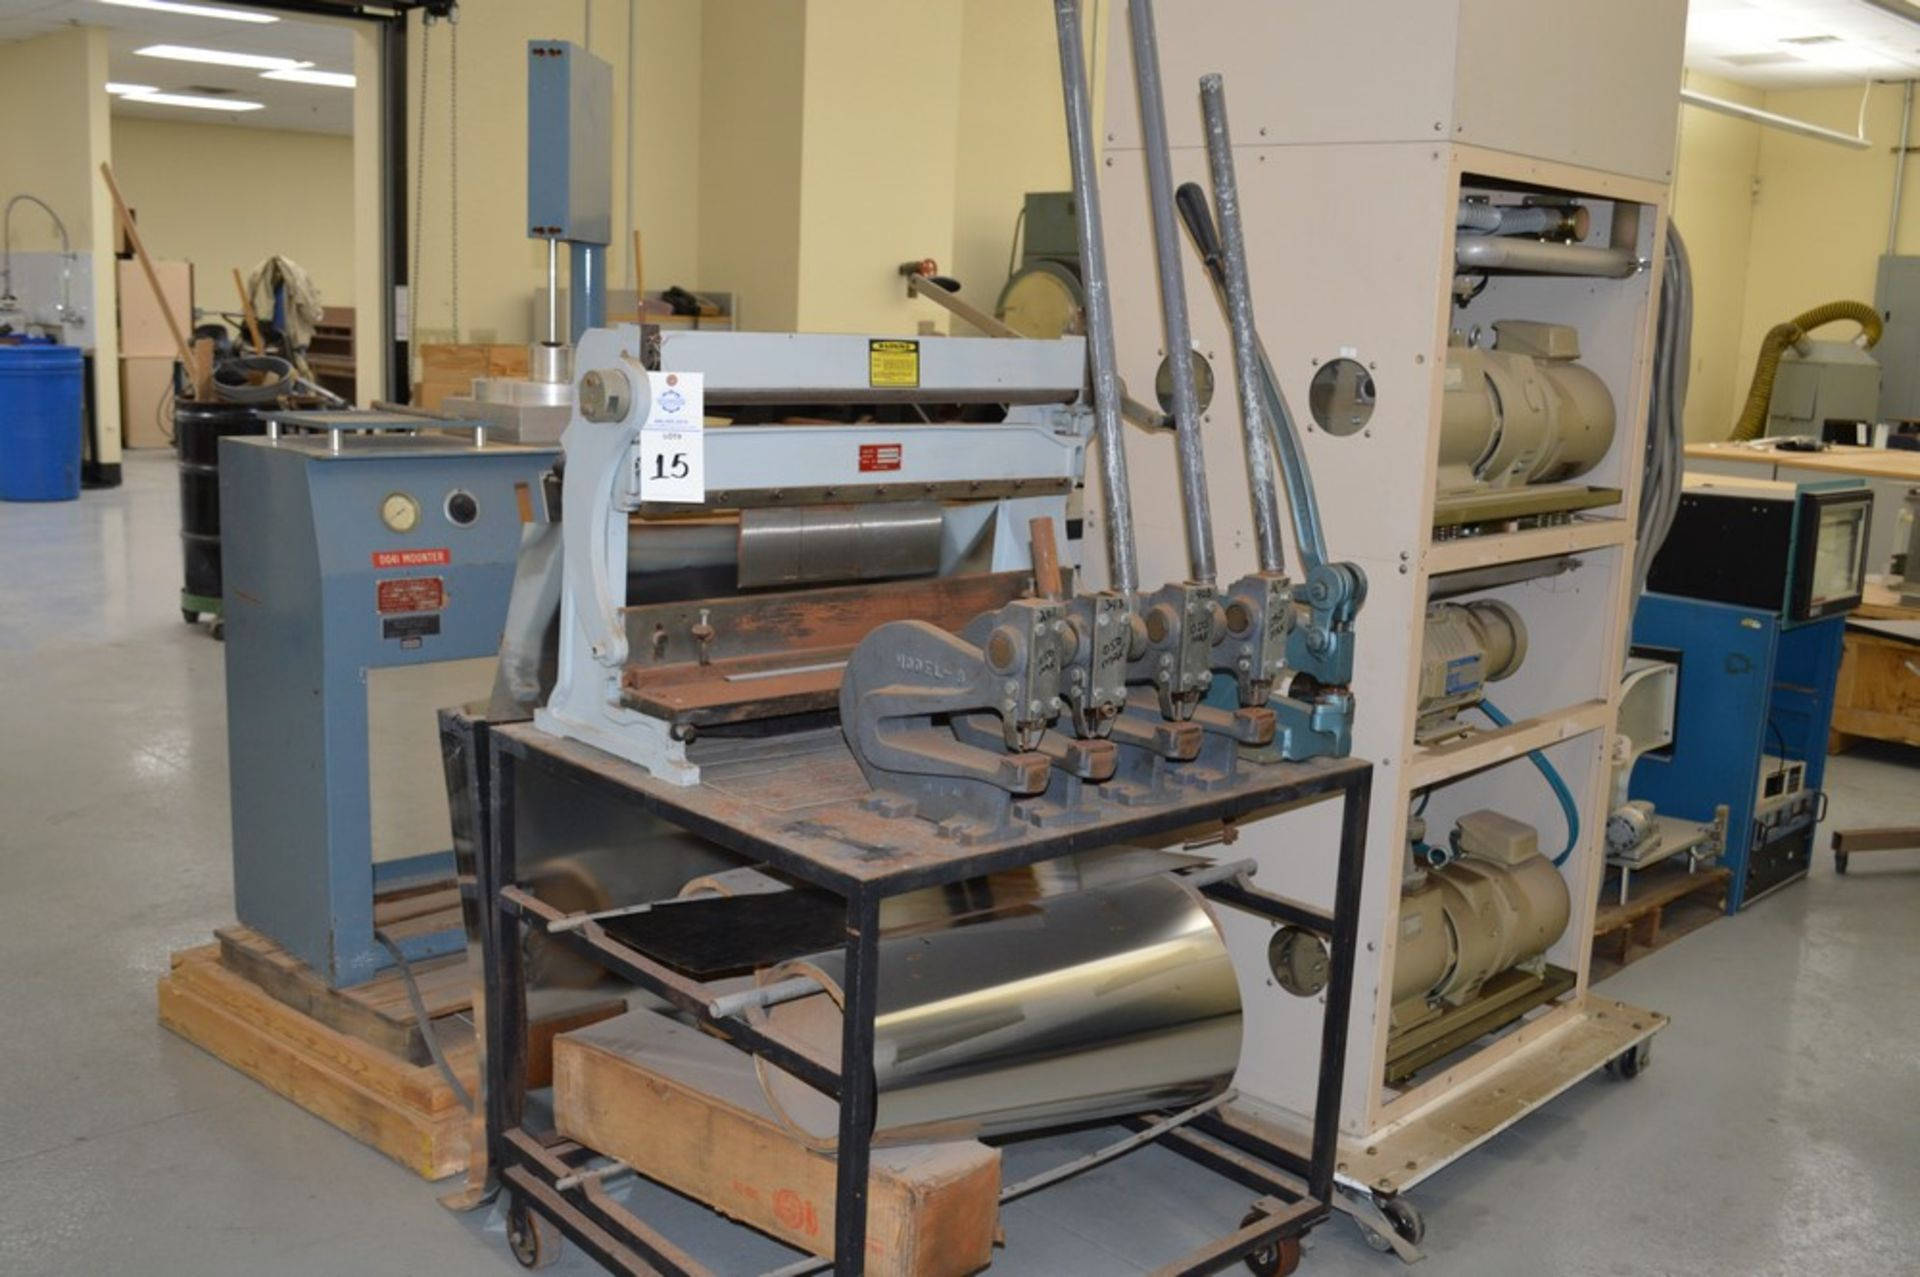 1995 Combined Manual Shear and Break black metal stand, metal rolls, (4 Each) Henrich/Pexto Model- - Image 2 of 8